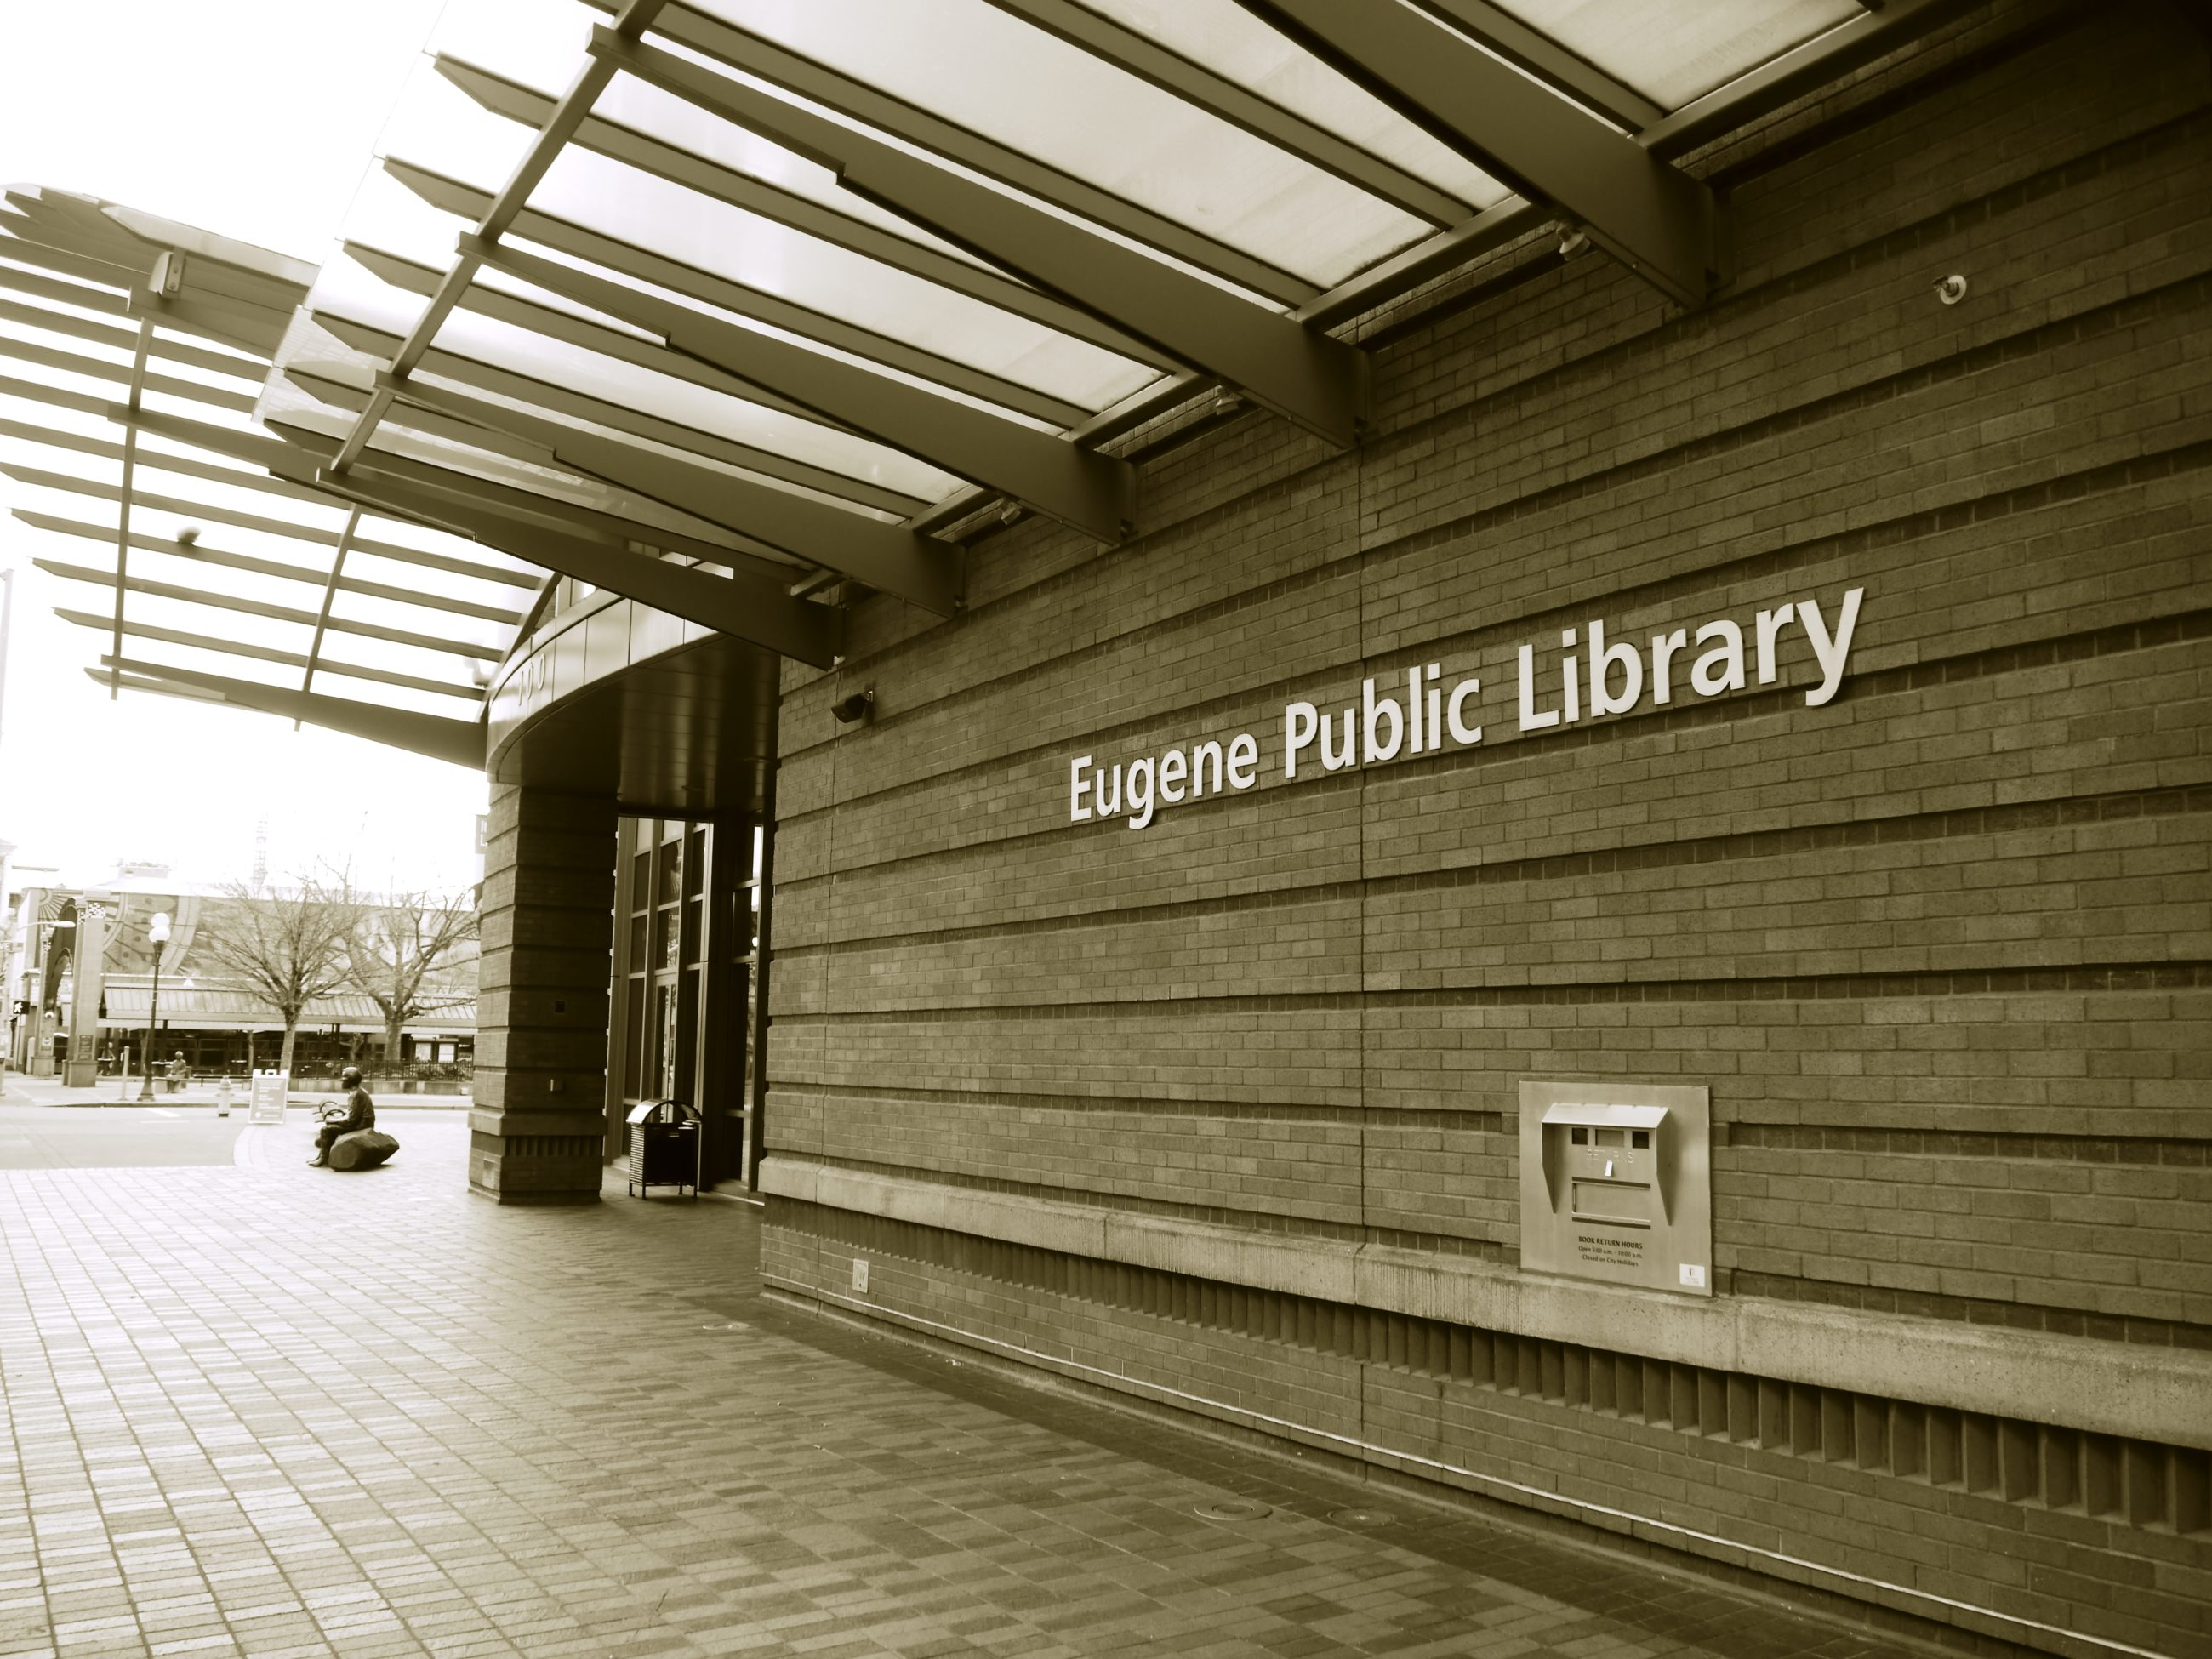 Library photo by Rick Obst